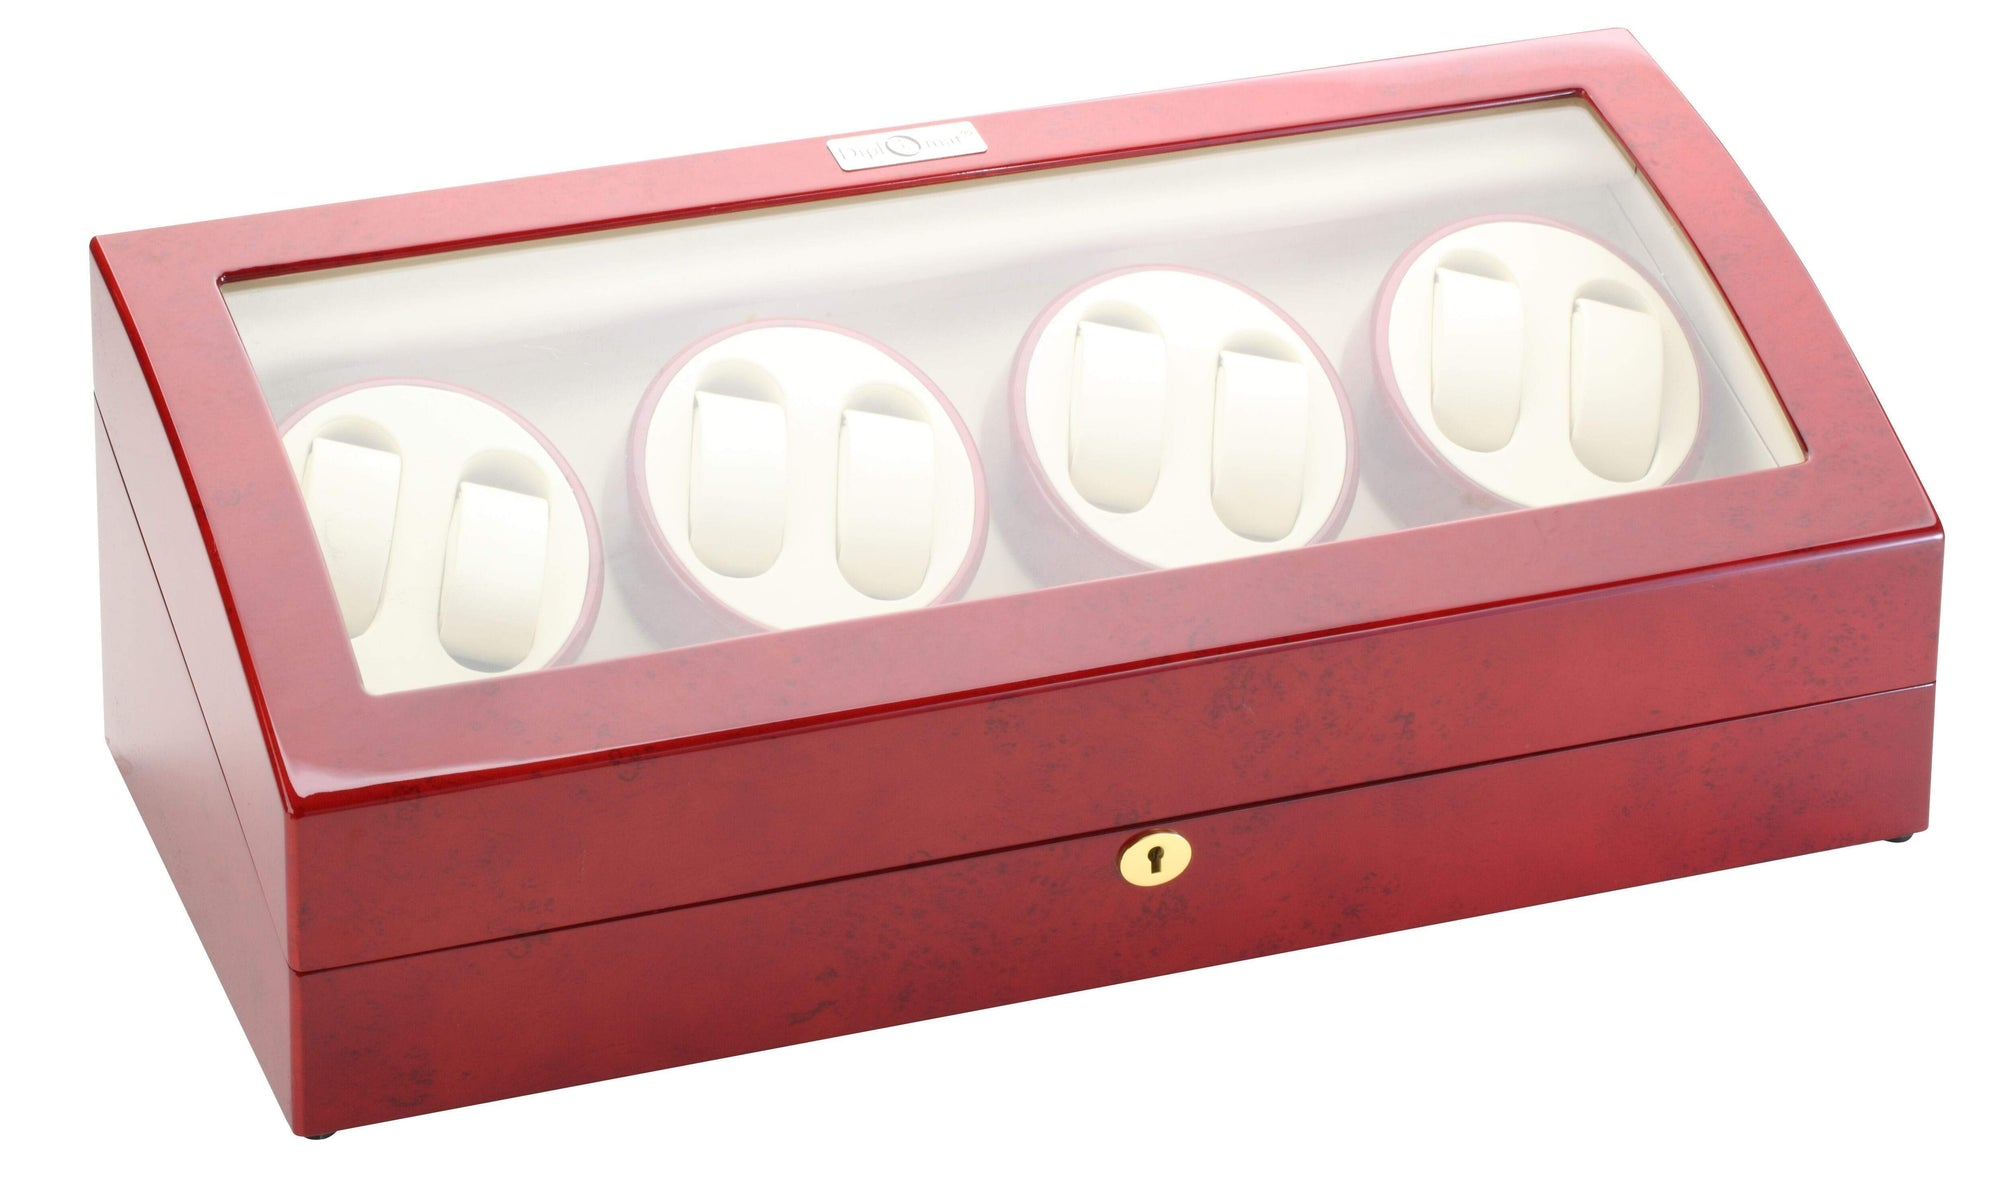 Diplomat Estate Cherry Wood Finish Eight Watch Winder with Cream Interior and Additional Storage for 9 Watches and Smart Internal Bi-Directional Timer Control Armadillo Safe and Vault